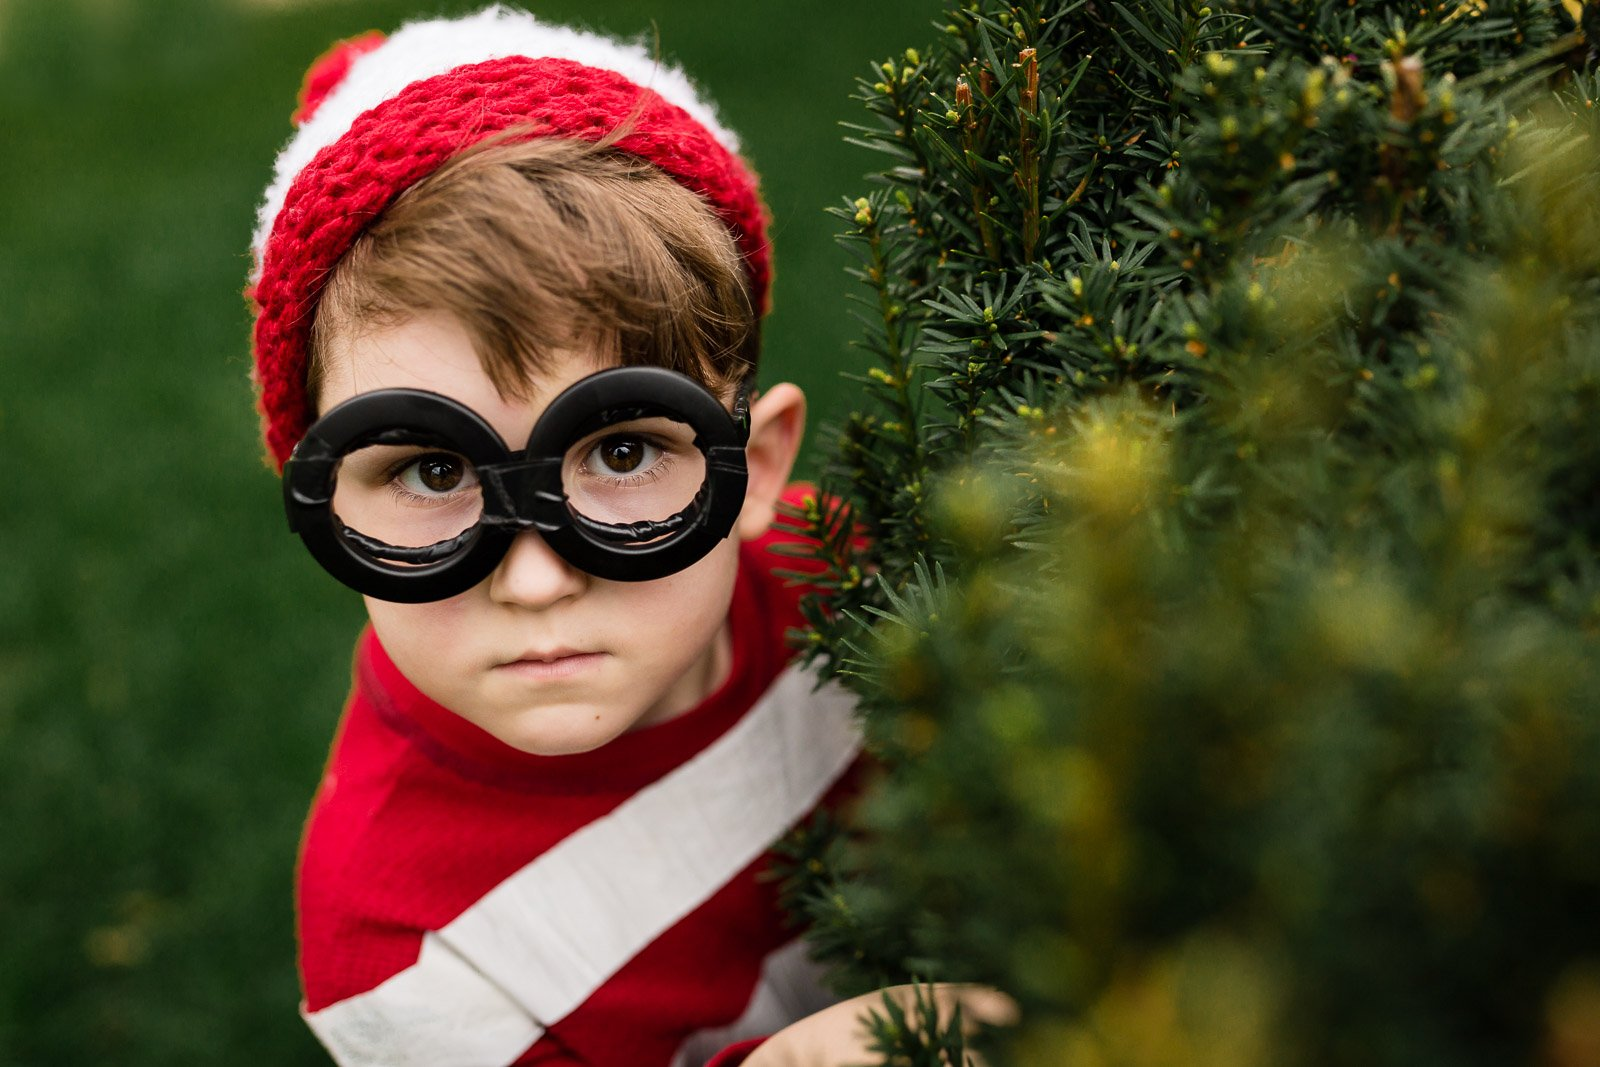 Boy dressed as Where's Waldo for Halloween photo